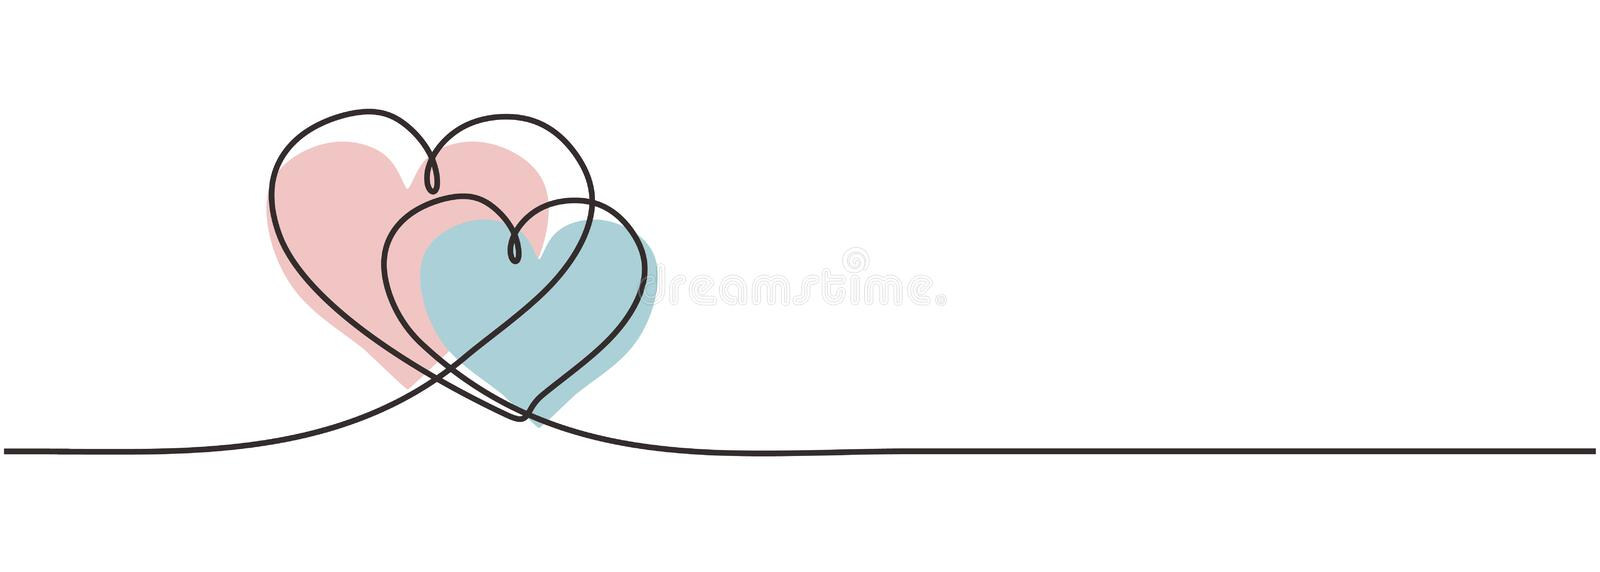 Two hearts embracing each other continuous one line drawing of love concept and romantic symbol for valentine's day greeting. Design card, poster, and sign vector illustration